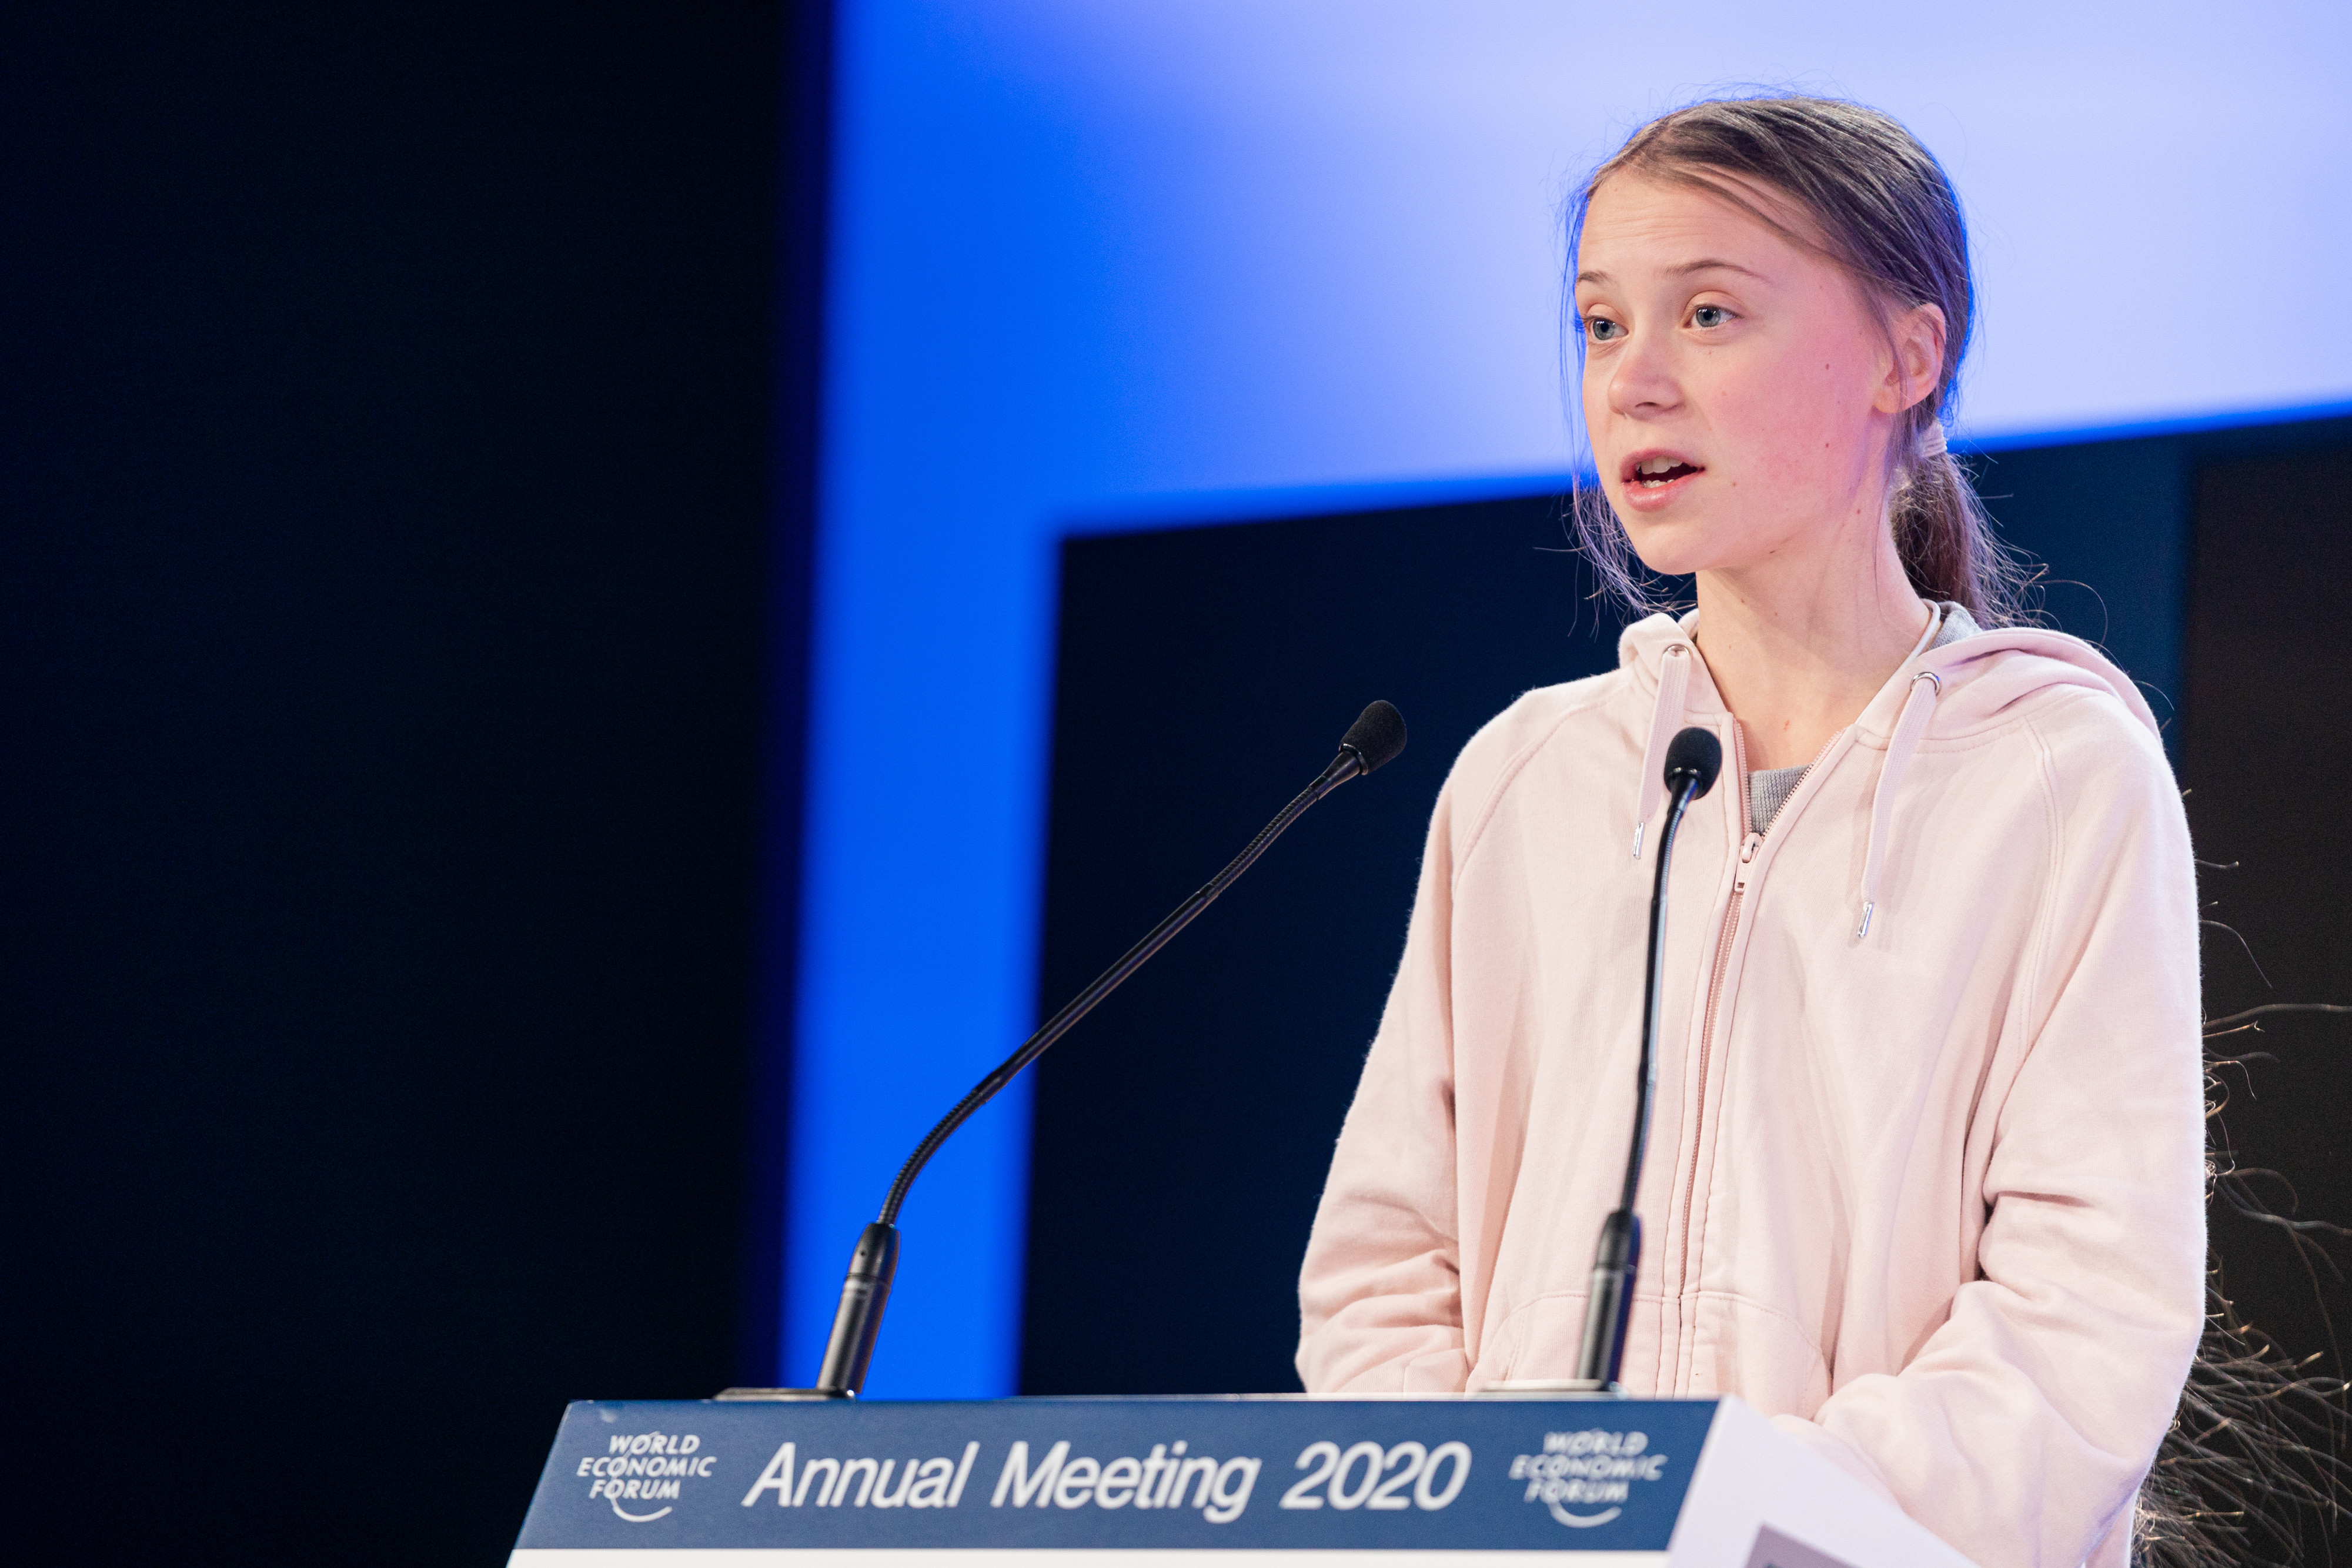 Greta Thunberg, Climate and Environmental Activist, Sweden speaking in the Averting a Climate Apocalypse at the World Economic Forum Annual Meeting 2020 in Davos-Klosters, Switzerland, 21 January. Congress Centre - Sanada. Copyright by World Economic Forum / Manuel Lopez